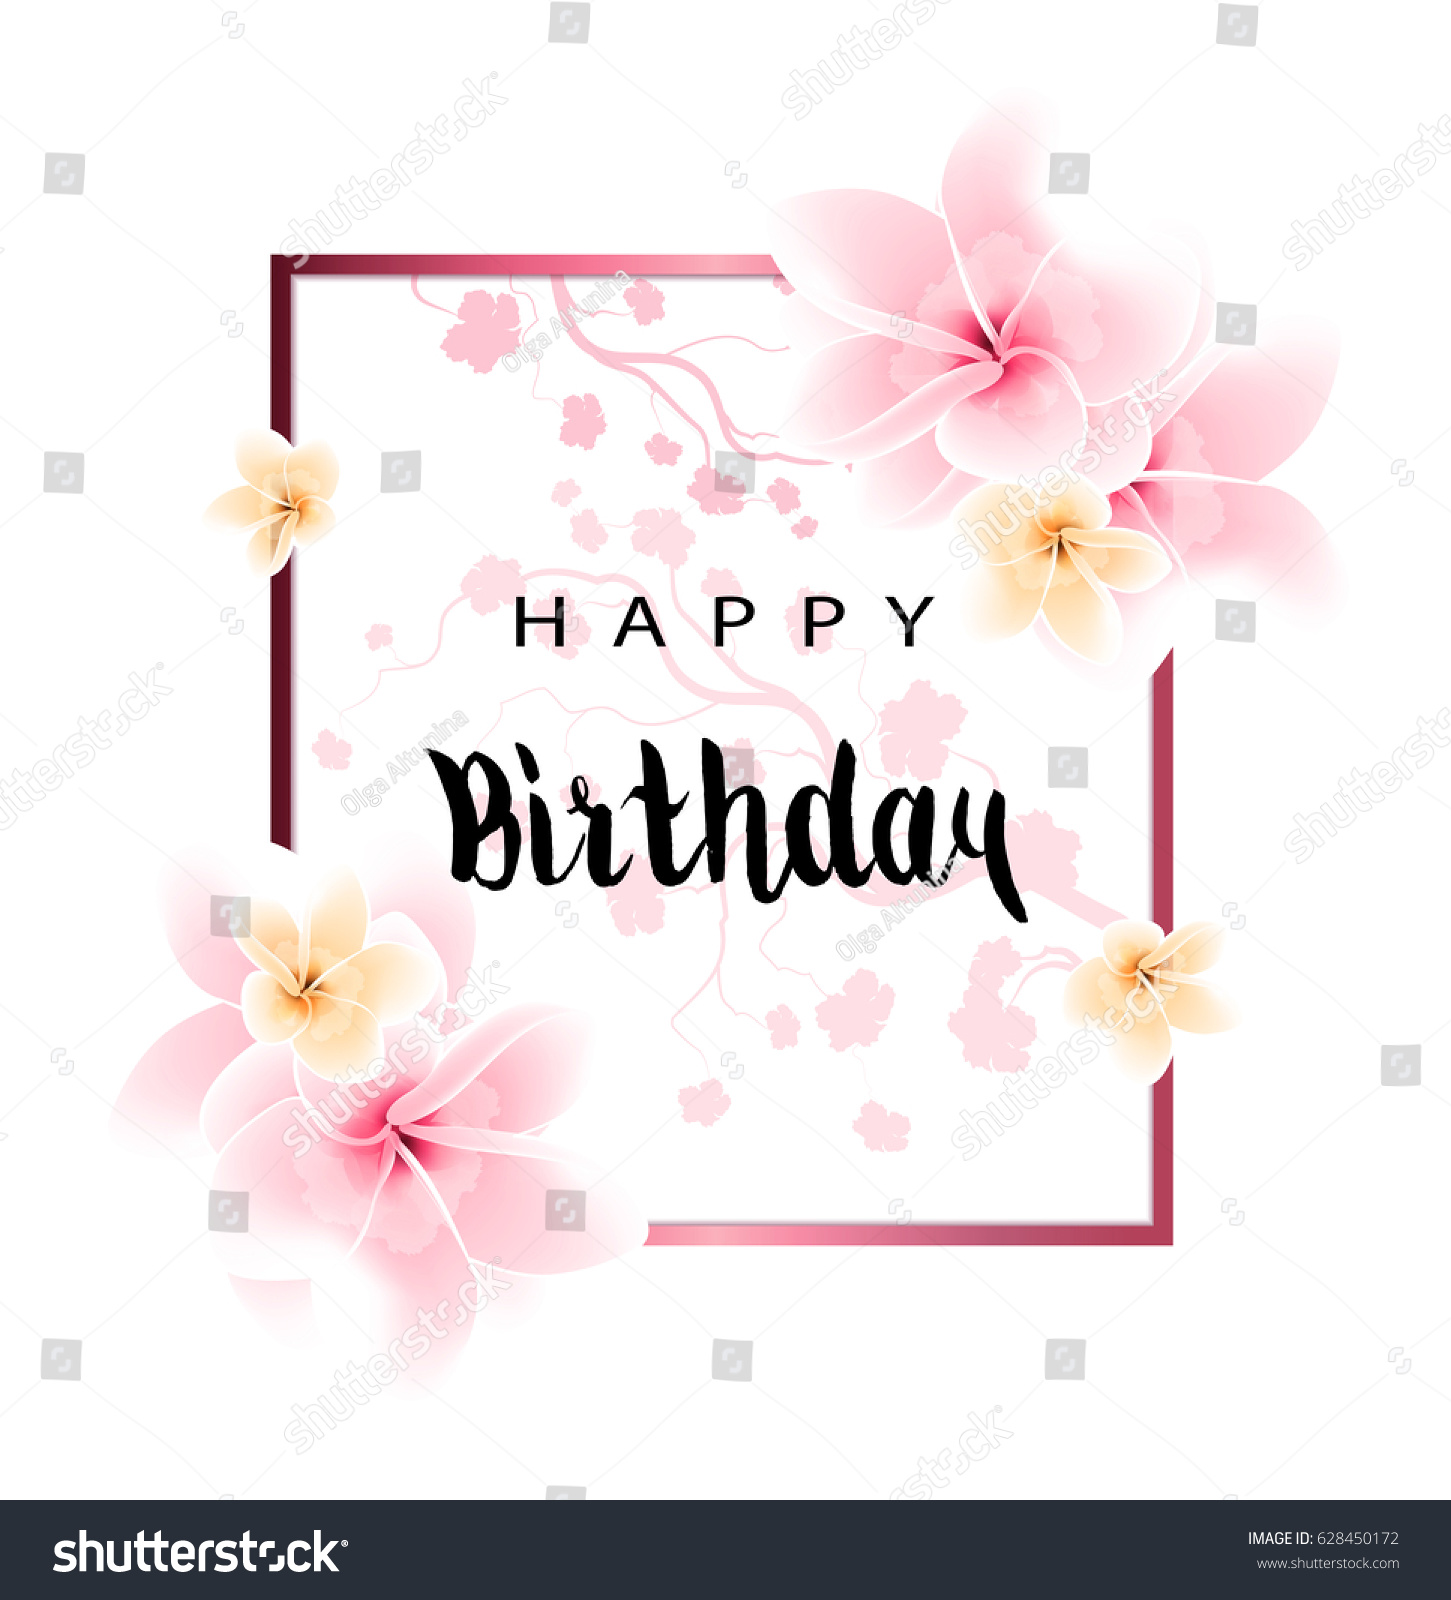 Abstract design happy birthday card flowers stock illustration abstract design happy birthday card with flowers and congratulation izmirmasajfo